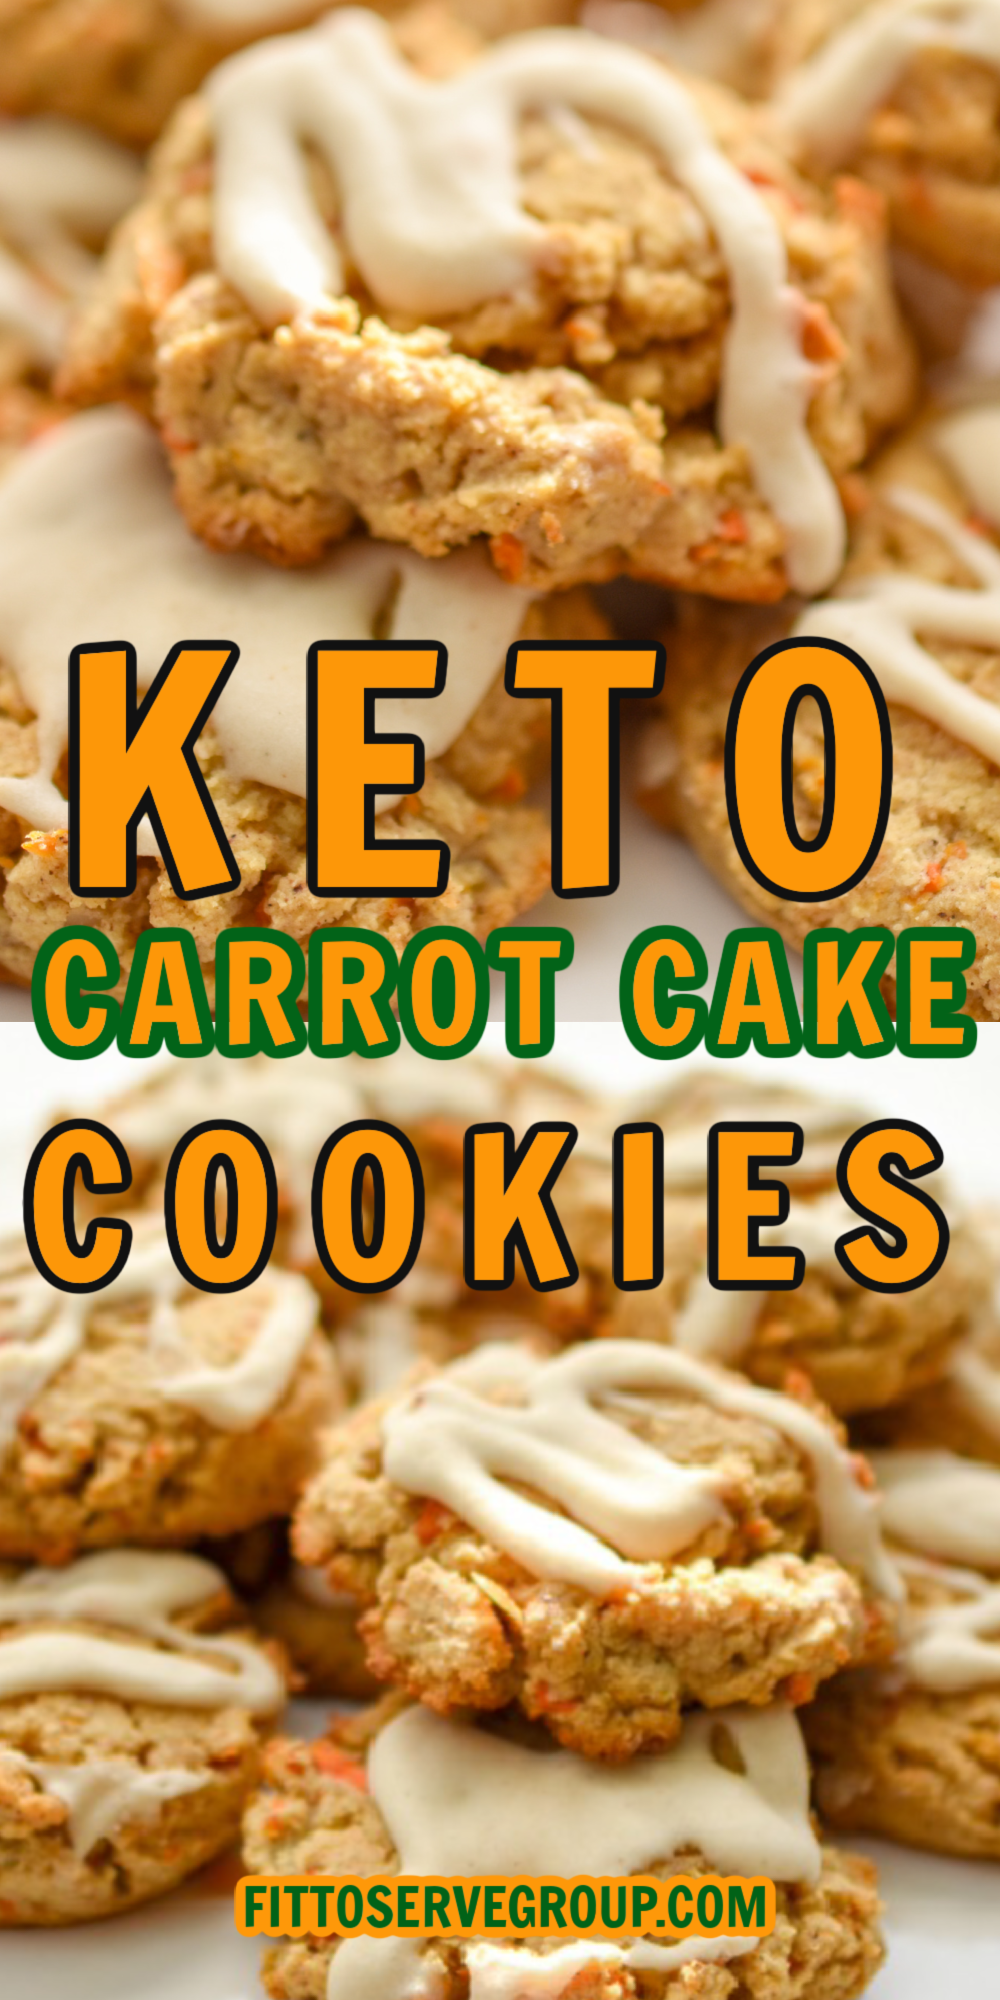 keto carrot cake cookies close up on white plates